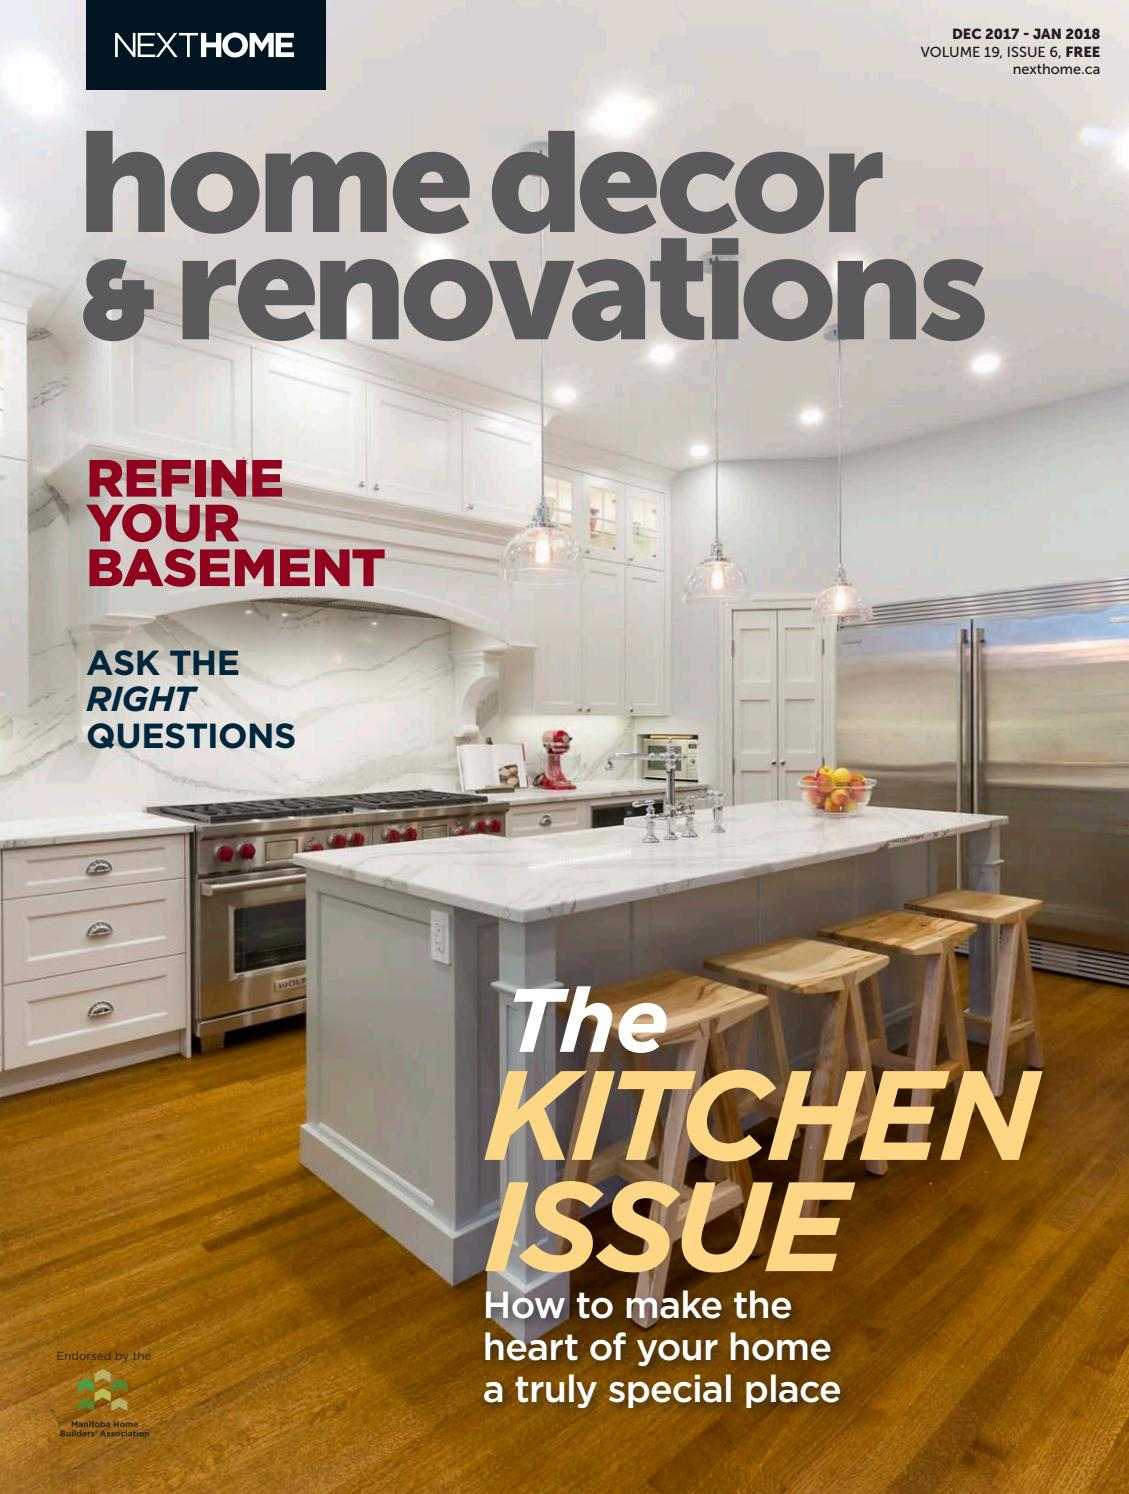 Manitoba home decor renovations dec 2017 jan 2018 by nexthome issuu